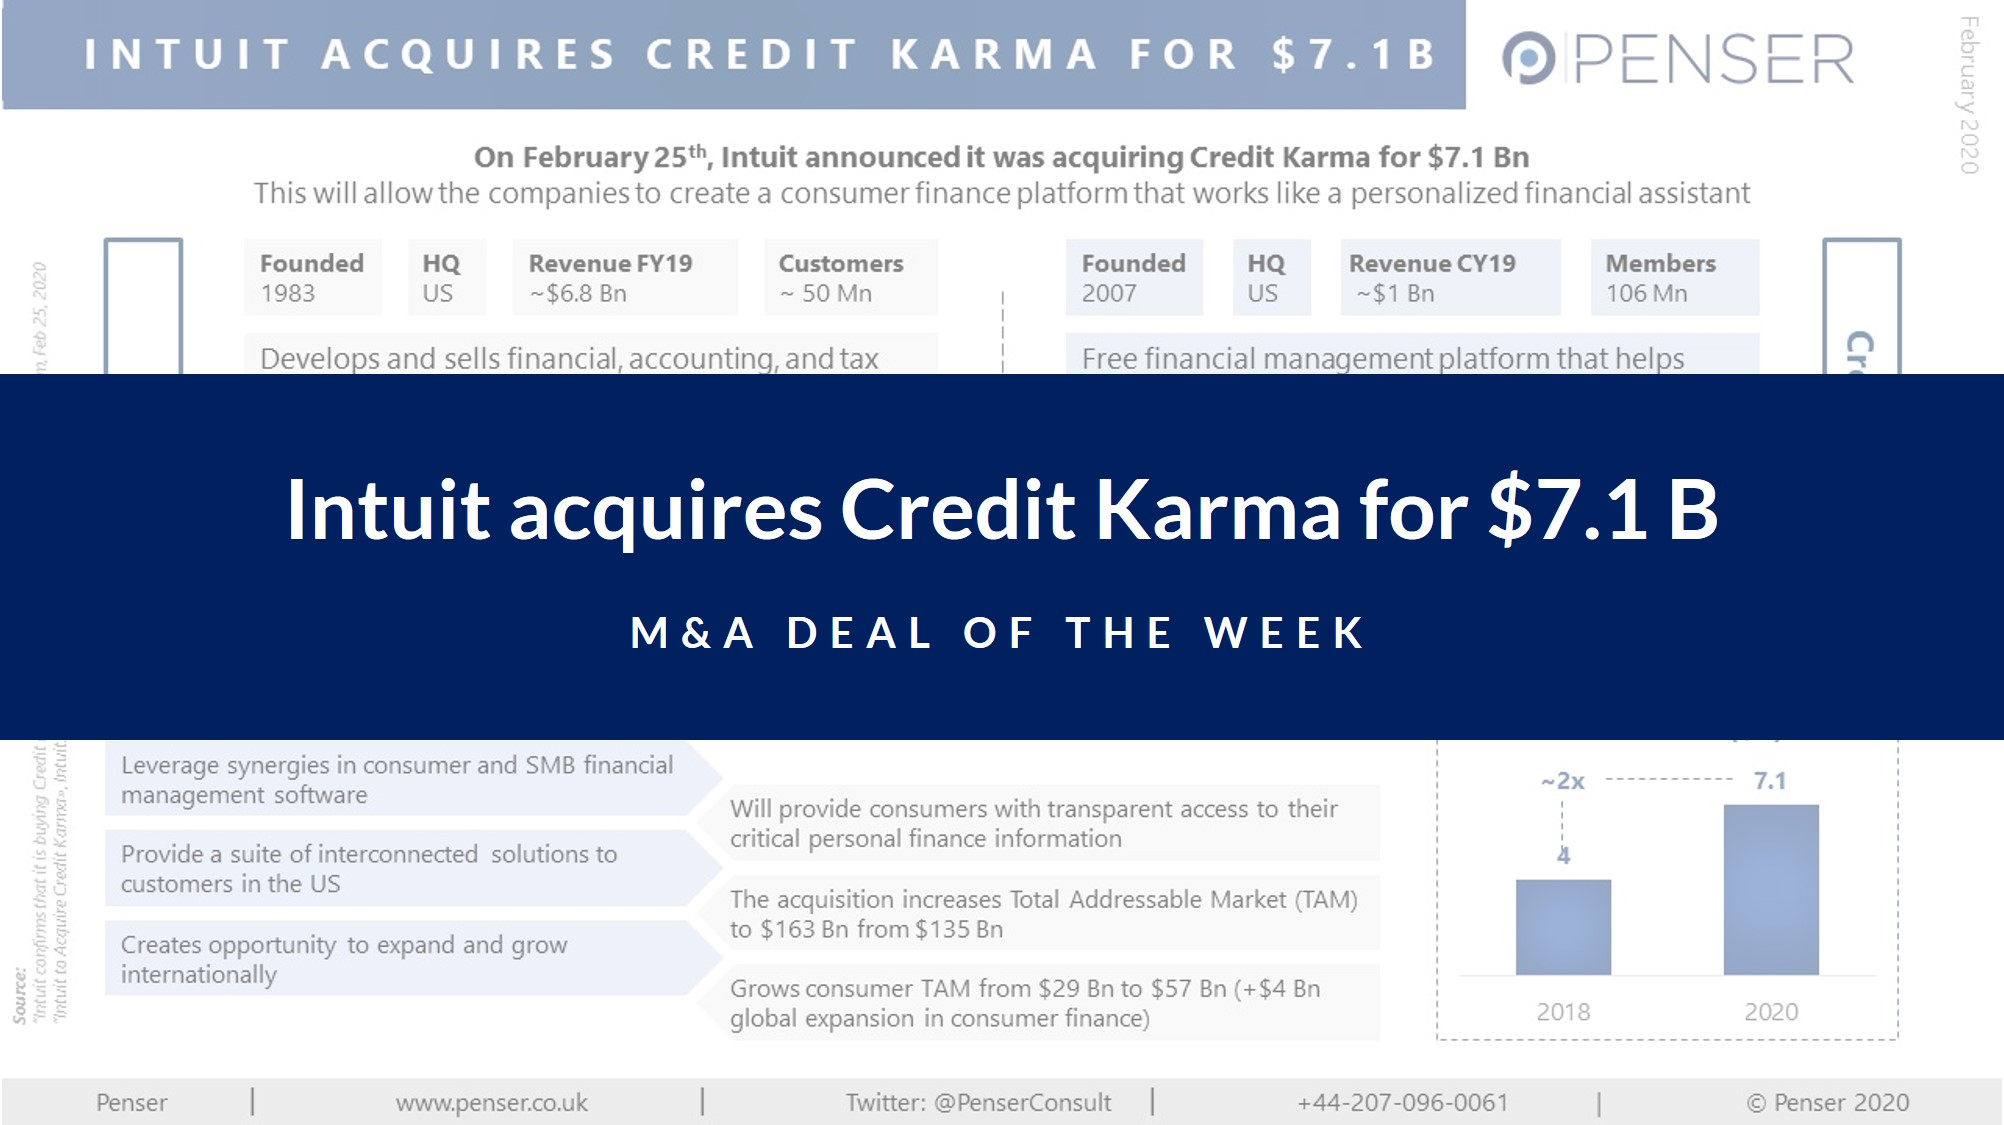 m&a-deal-of-the-week:-intuit-acquires-credit-karma